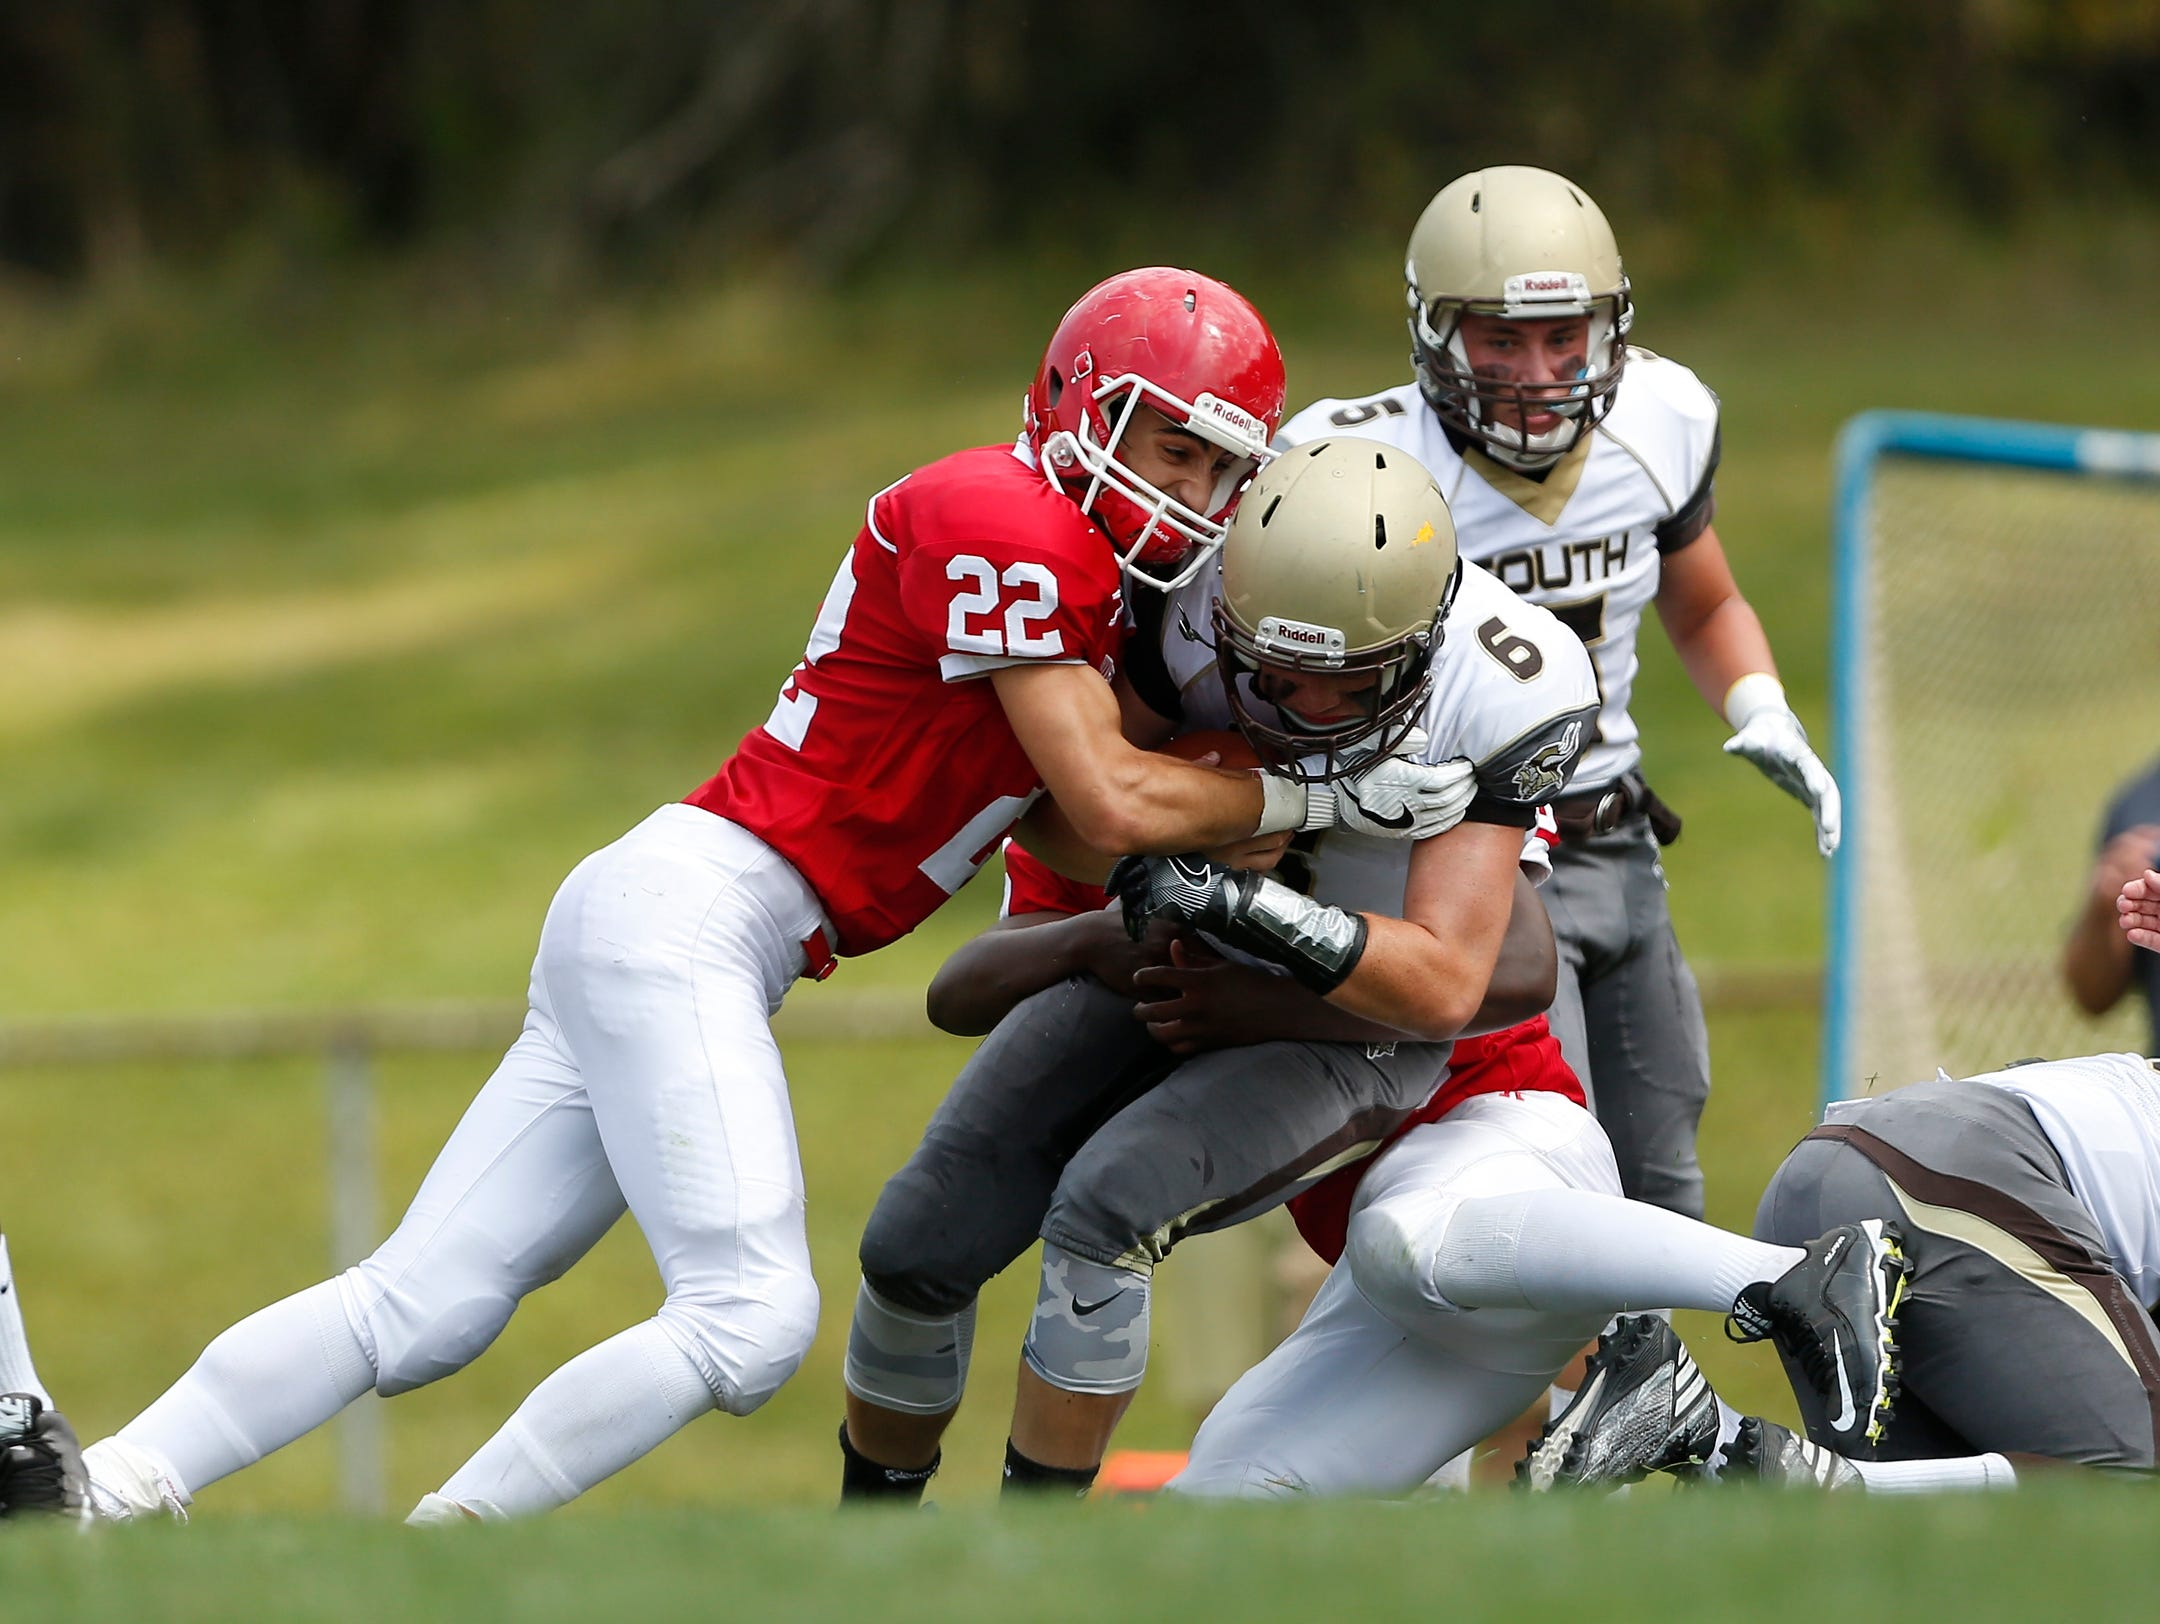 Clarkstown South quarterback Matt Jung (6) is tackled by North Rockland's Damian Colon (22) during football action at North Rockland High School in Thiells on Saturday, September 10, 2016. The second half is postponed due to heat. Clarkstown South is up at the half, 17-0.